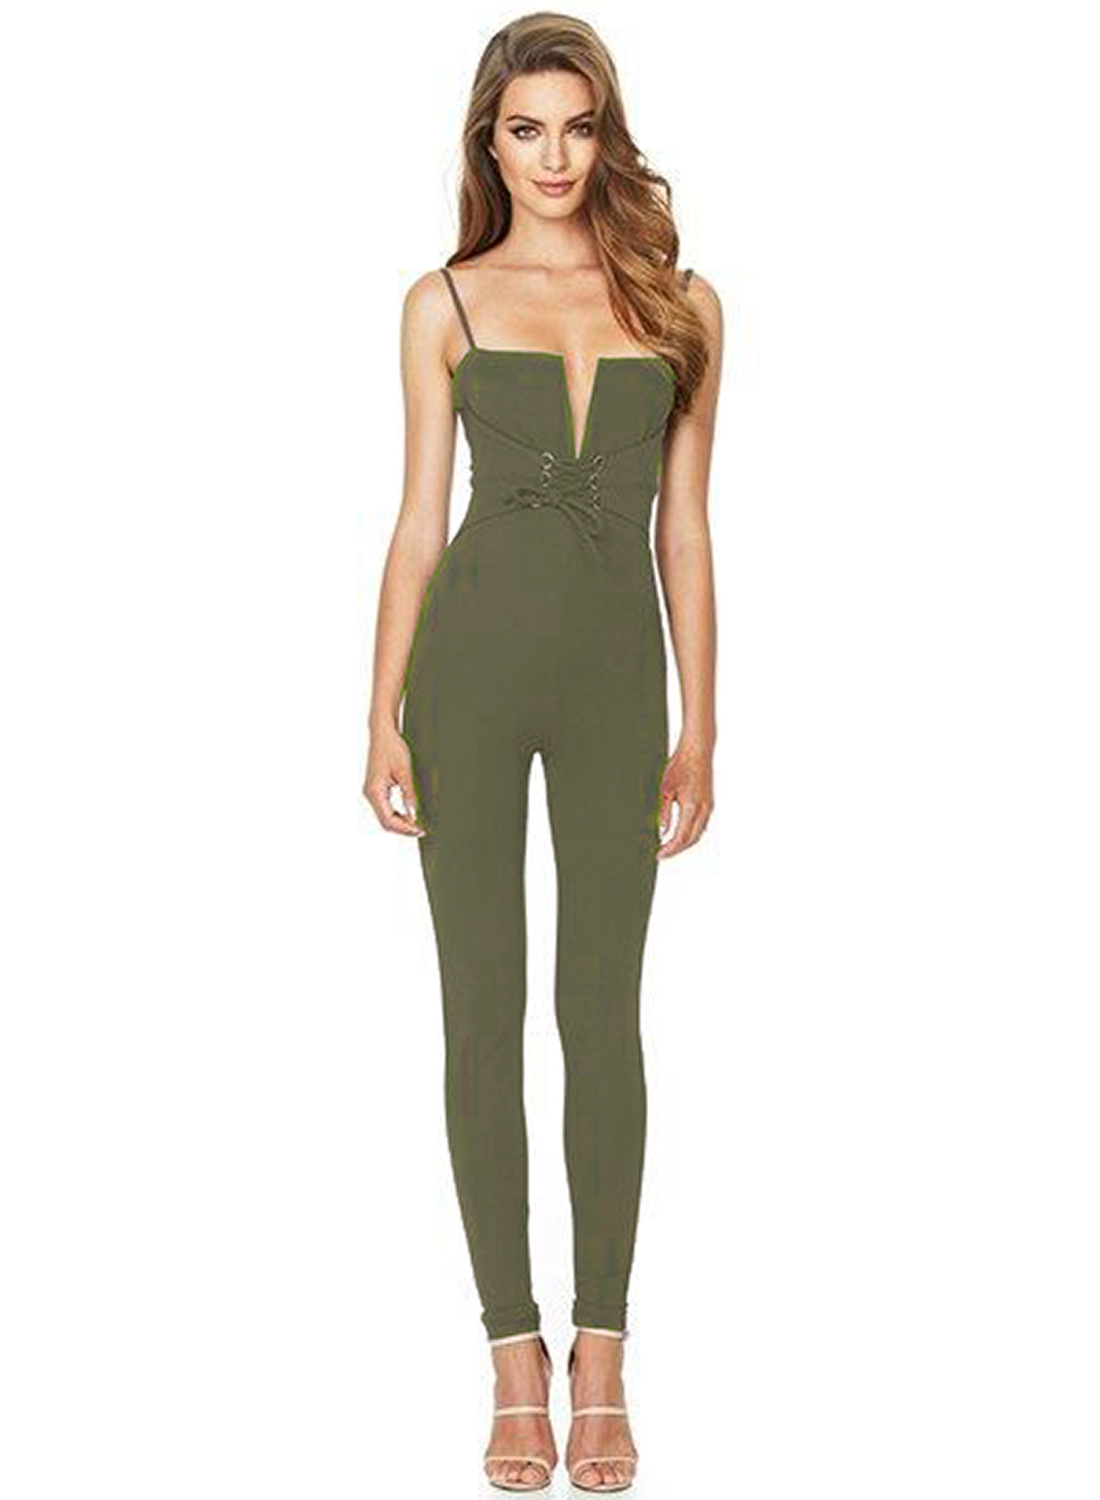 54639a3474c Spaghetti Strap Lace-up Slim Fit Jumpsuit STYLESIMO.com. Loading zoom